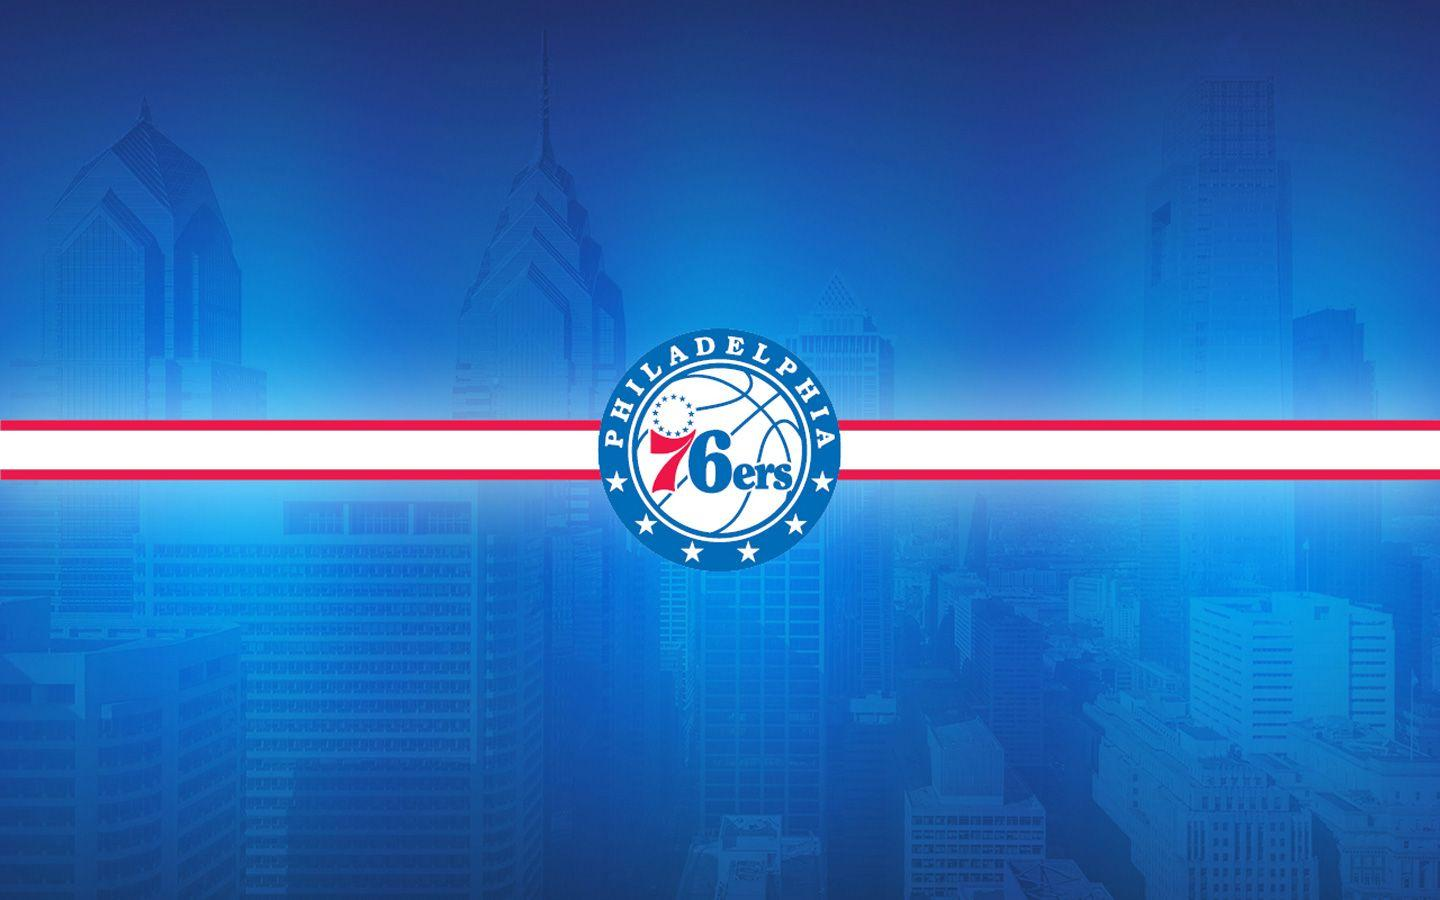 76ers wallpaper hd for Computer